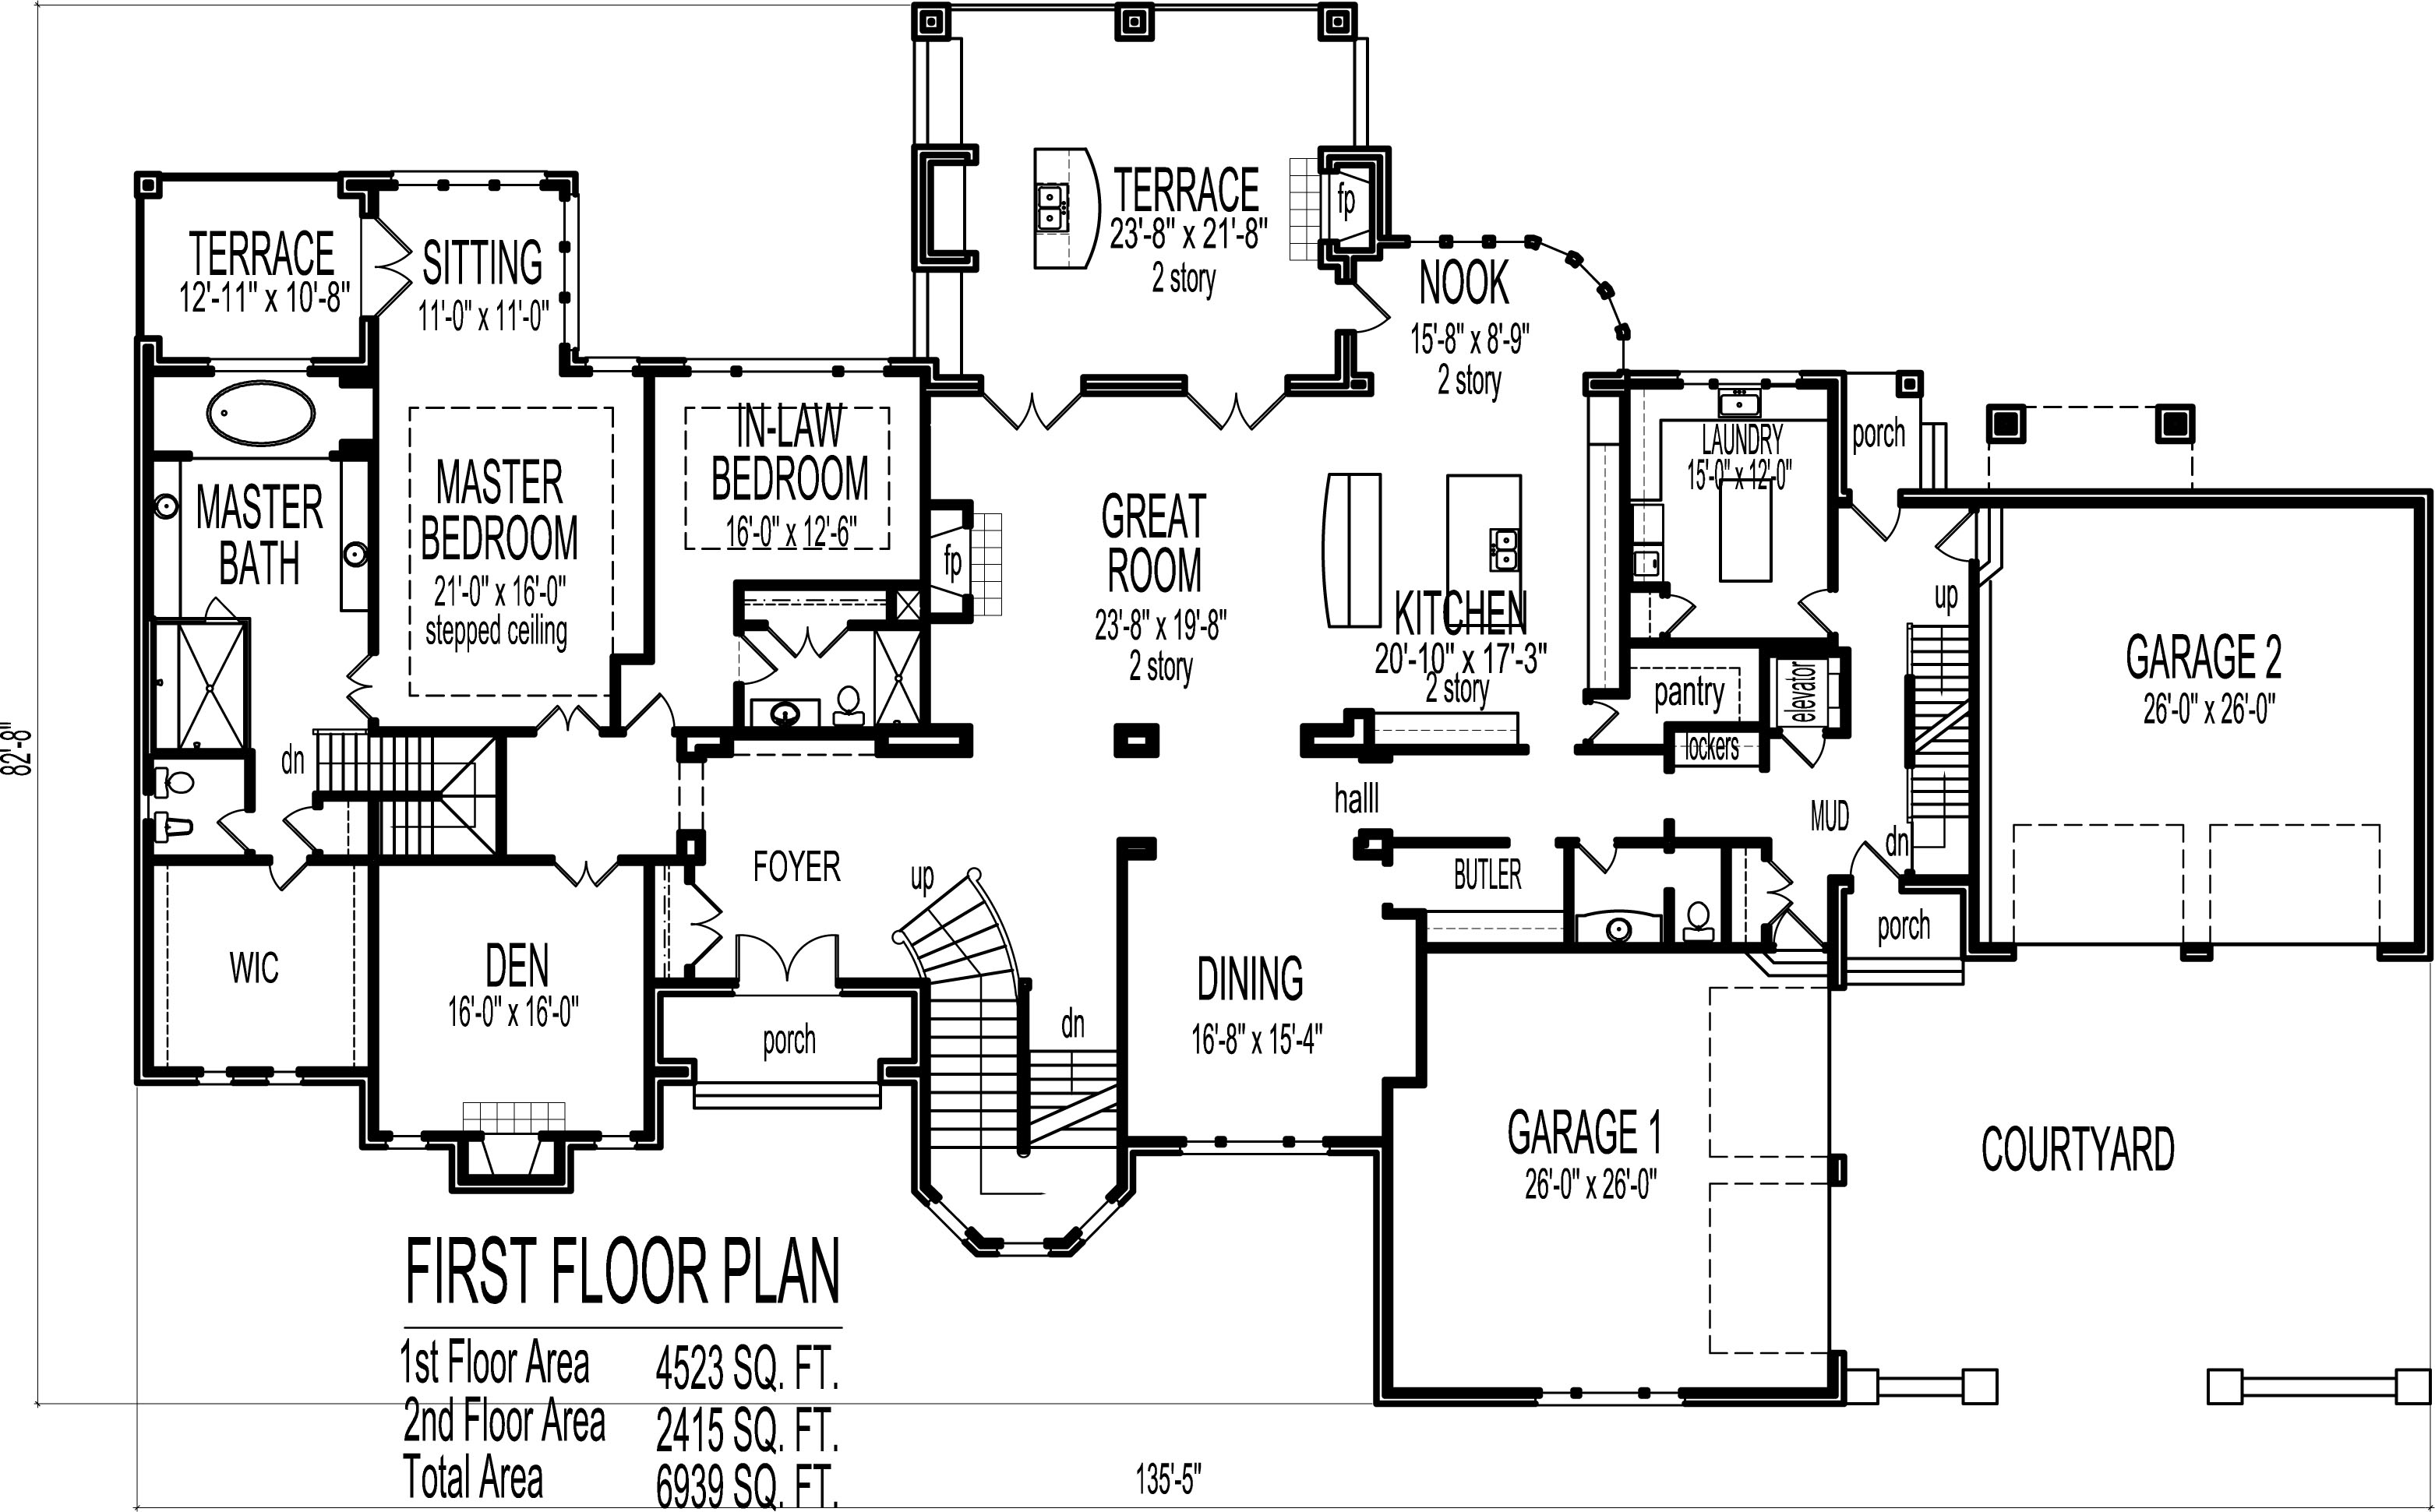 Mansion house floor plans blueprints 6 bedroom 2 story for 7 bedroom home plans